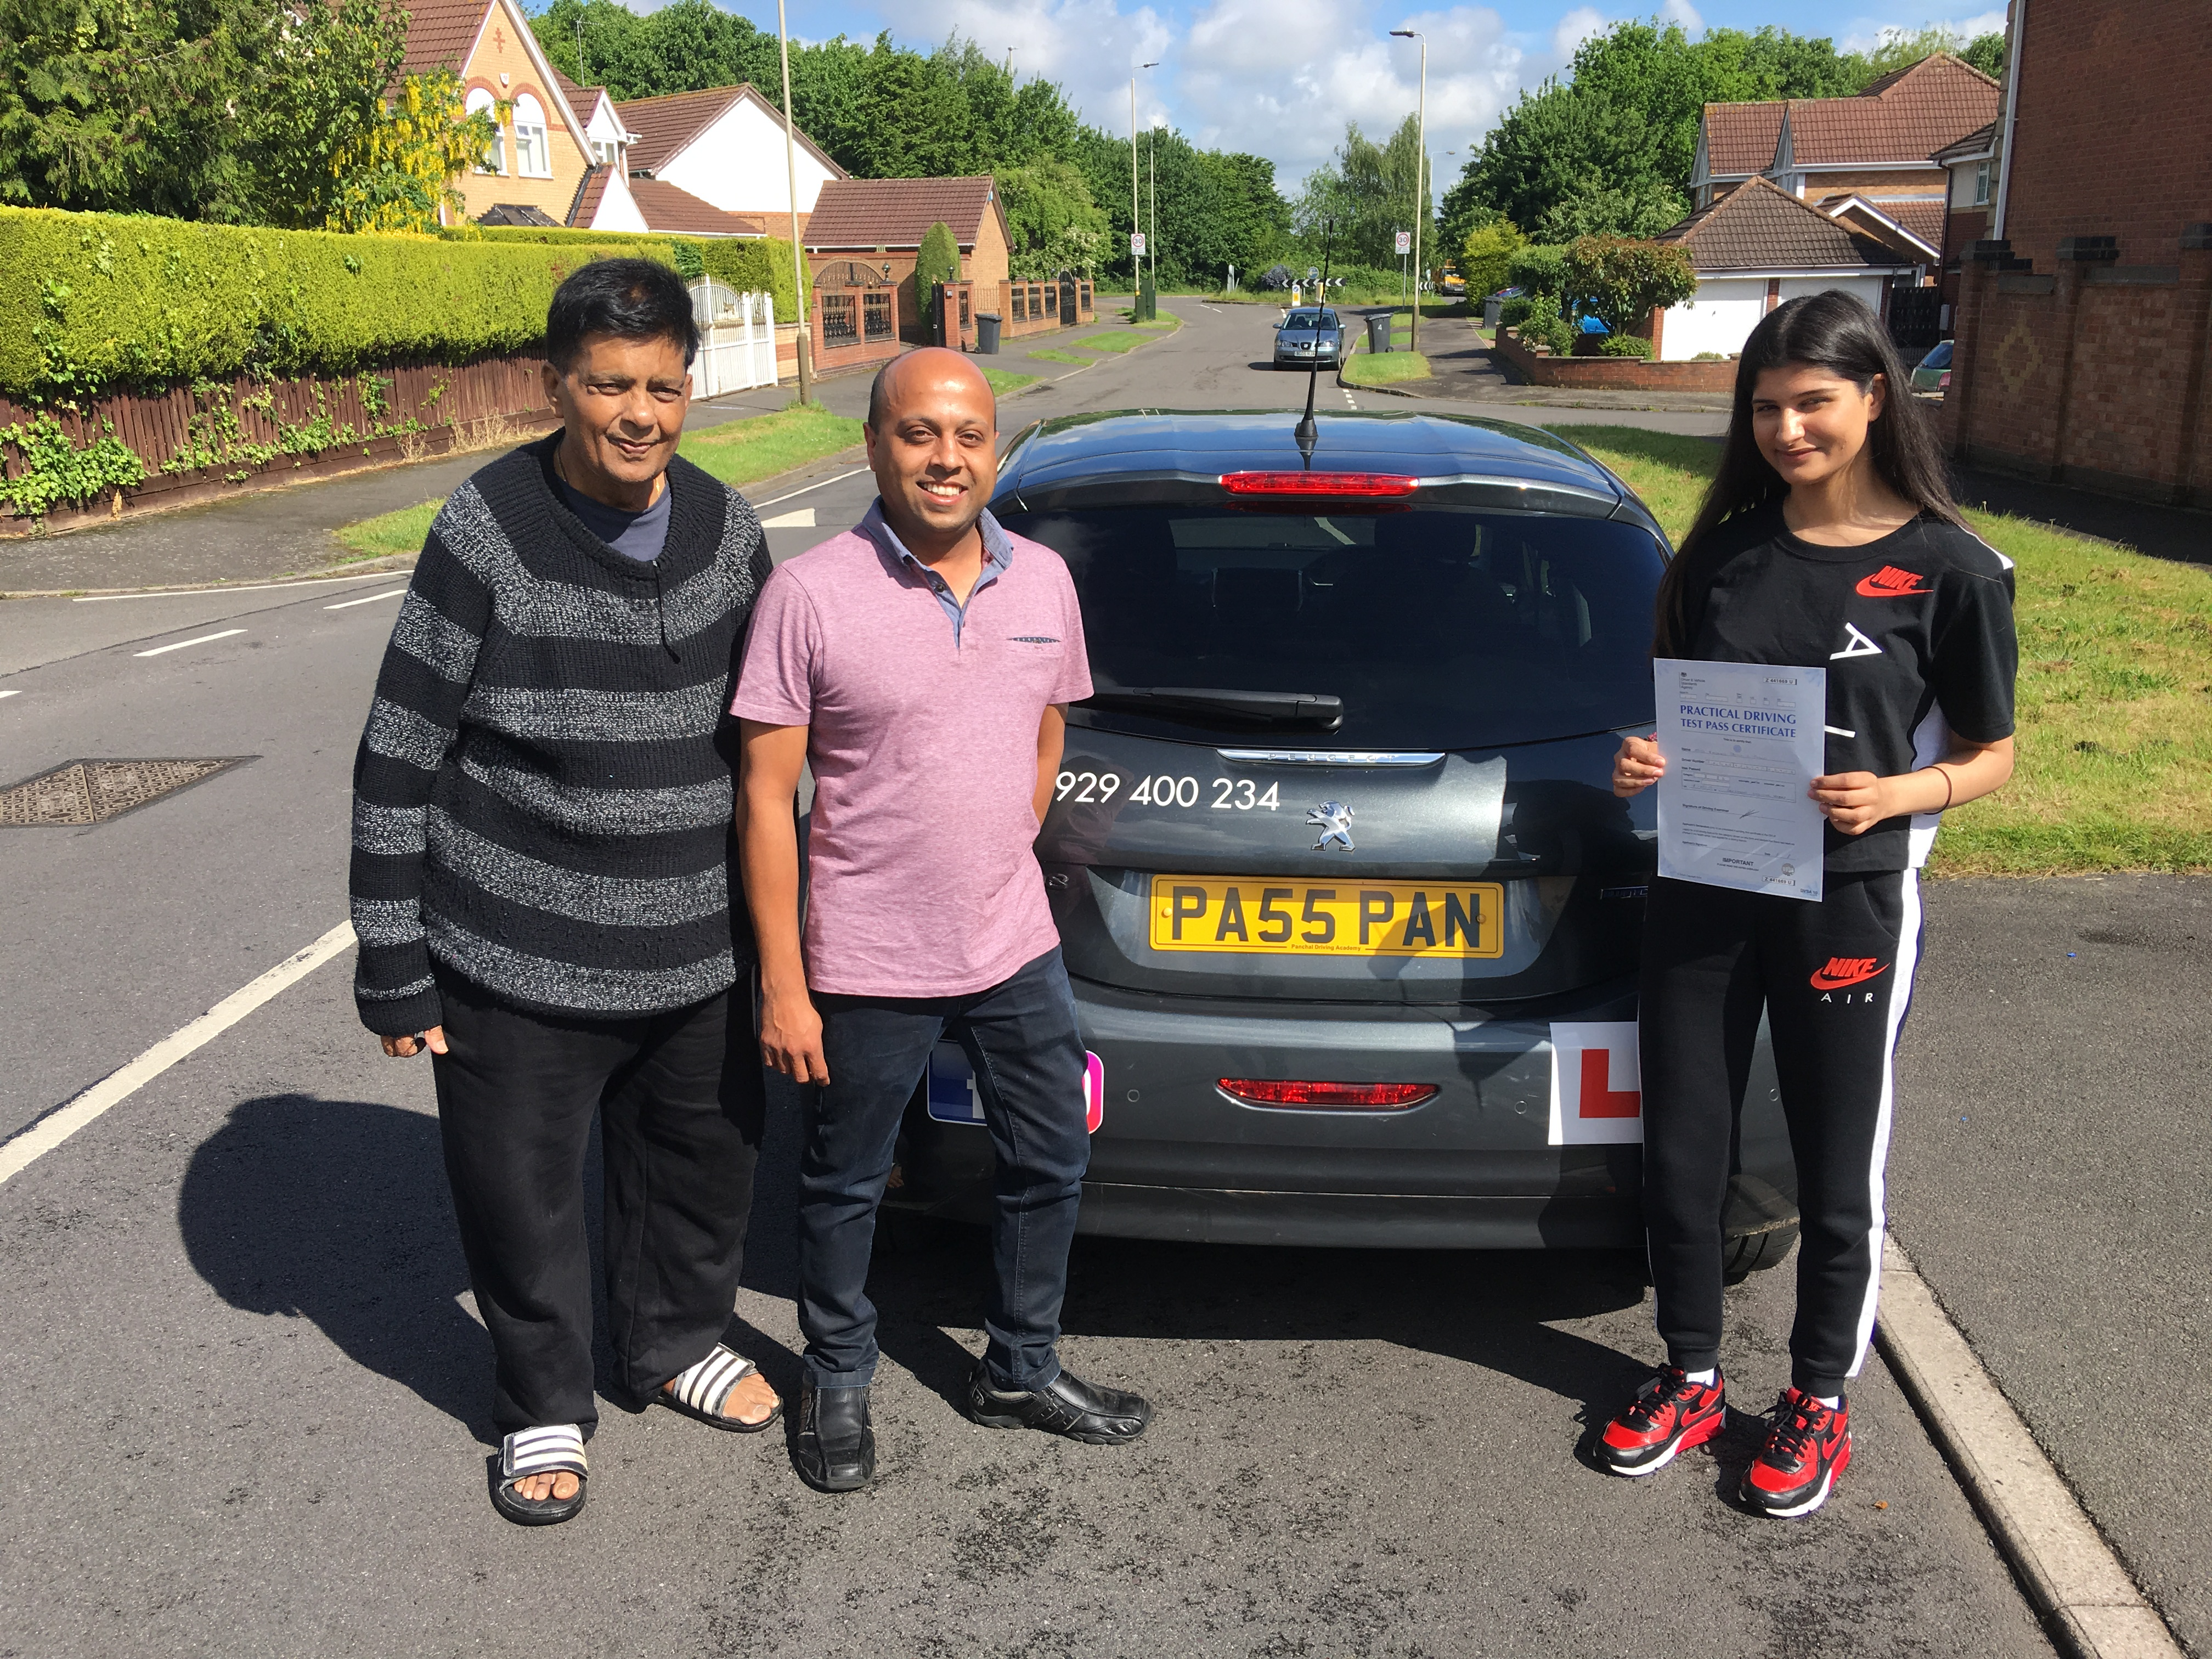 driving lessons leicester - Panchal Driving Academy - Eashani Pabari